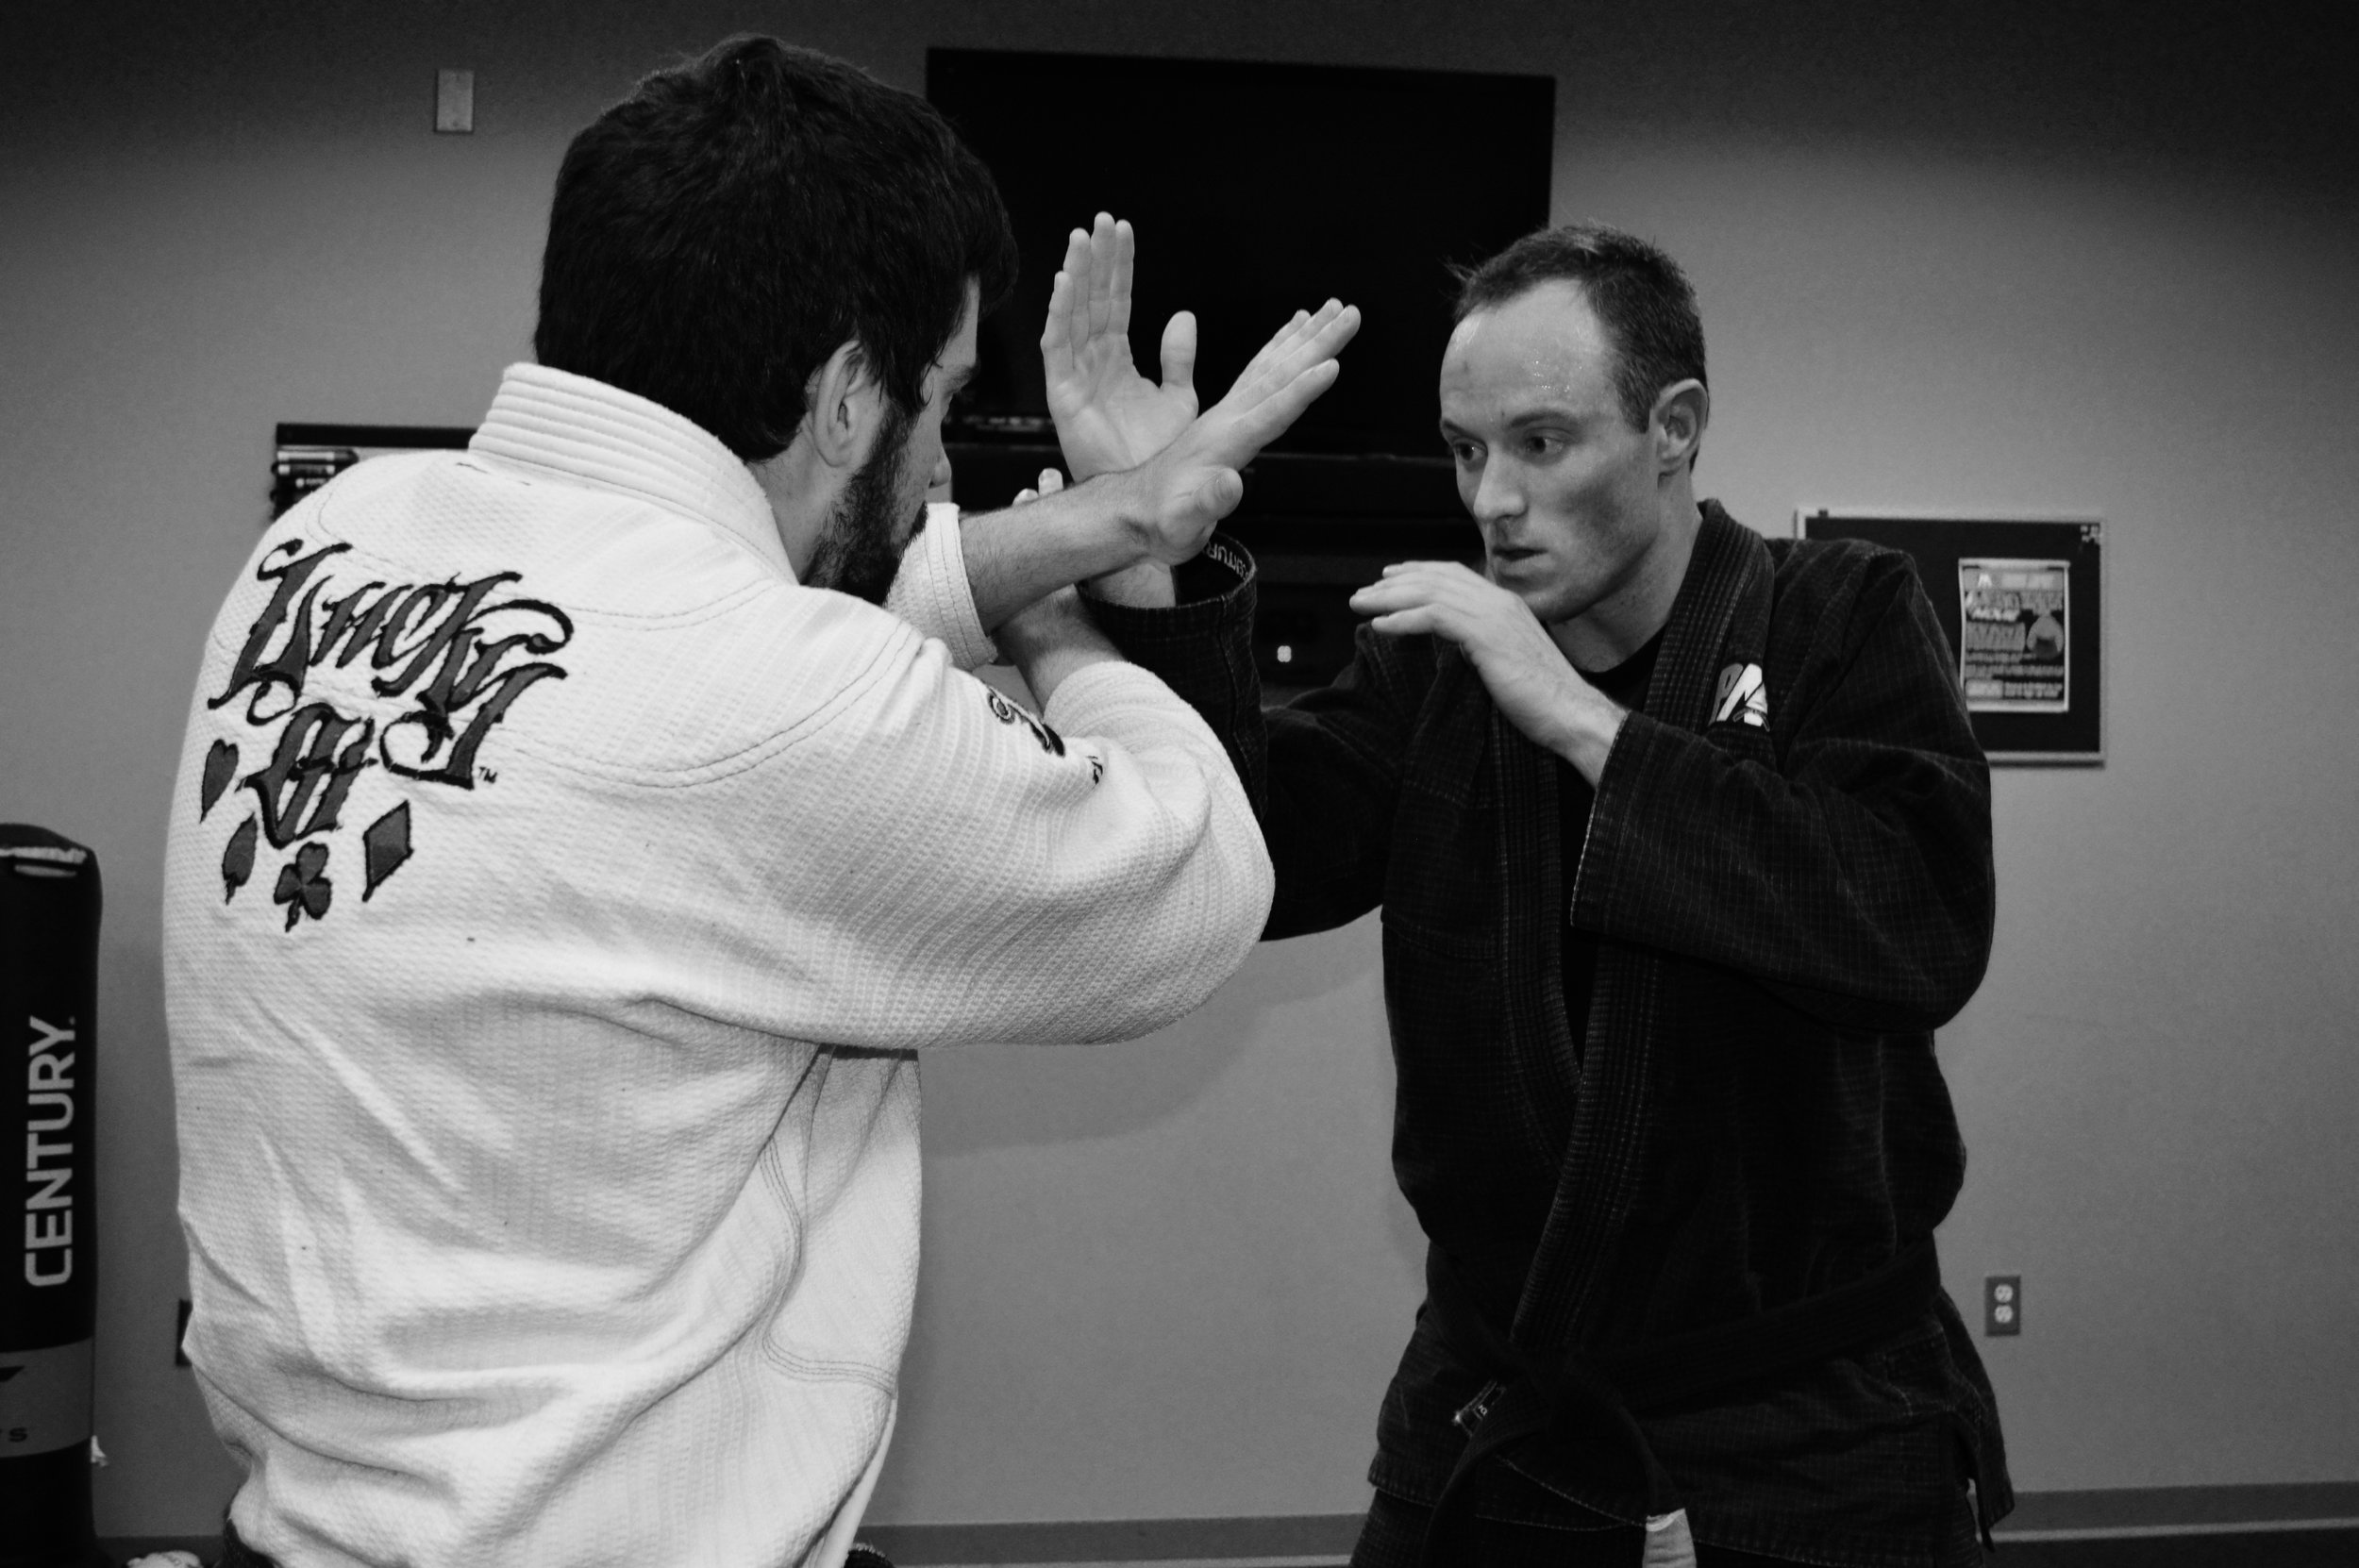 Matt began his training at PMA fresh out of college! He started with Brazilian Jiu Jitsu, before adding training in PMA's Phase Program (JKD, Kali, Kickboxing & more), and lastly added FILKENJUTSU Kenpo to his training a few years ago.